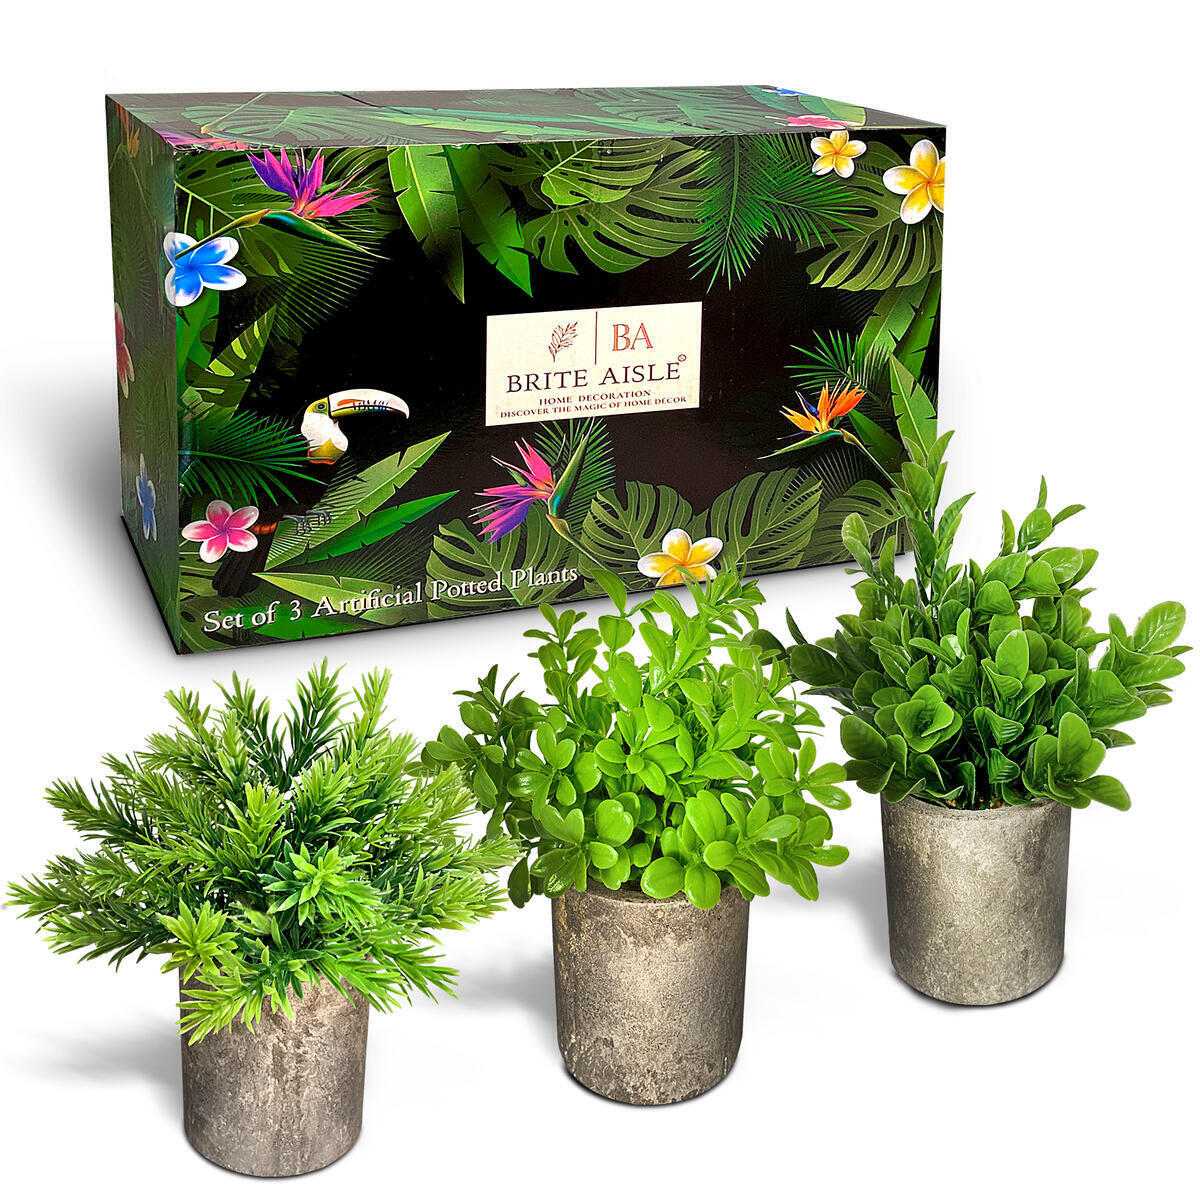 BRITE AISLE Artificial Plants for Home and Office Décor Set of 3 Potted Small Fake Plants of Rosemary, Orange Jasmine and Peanut Leaves